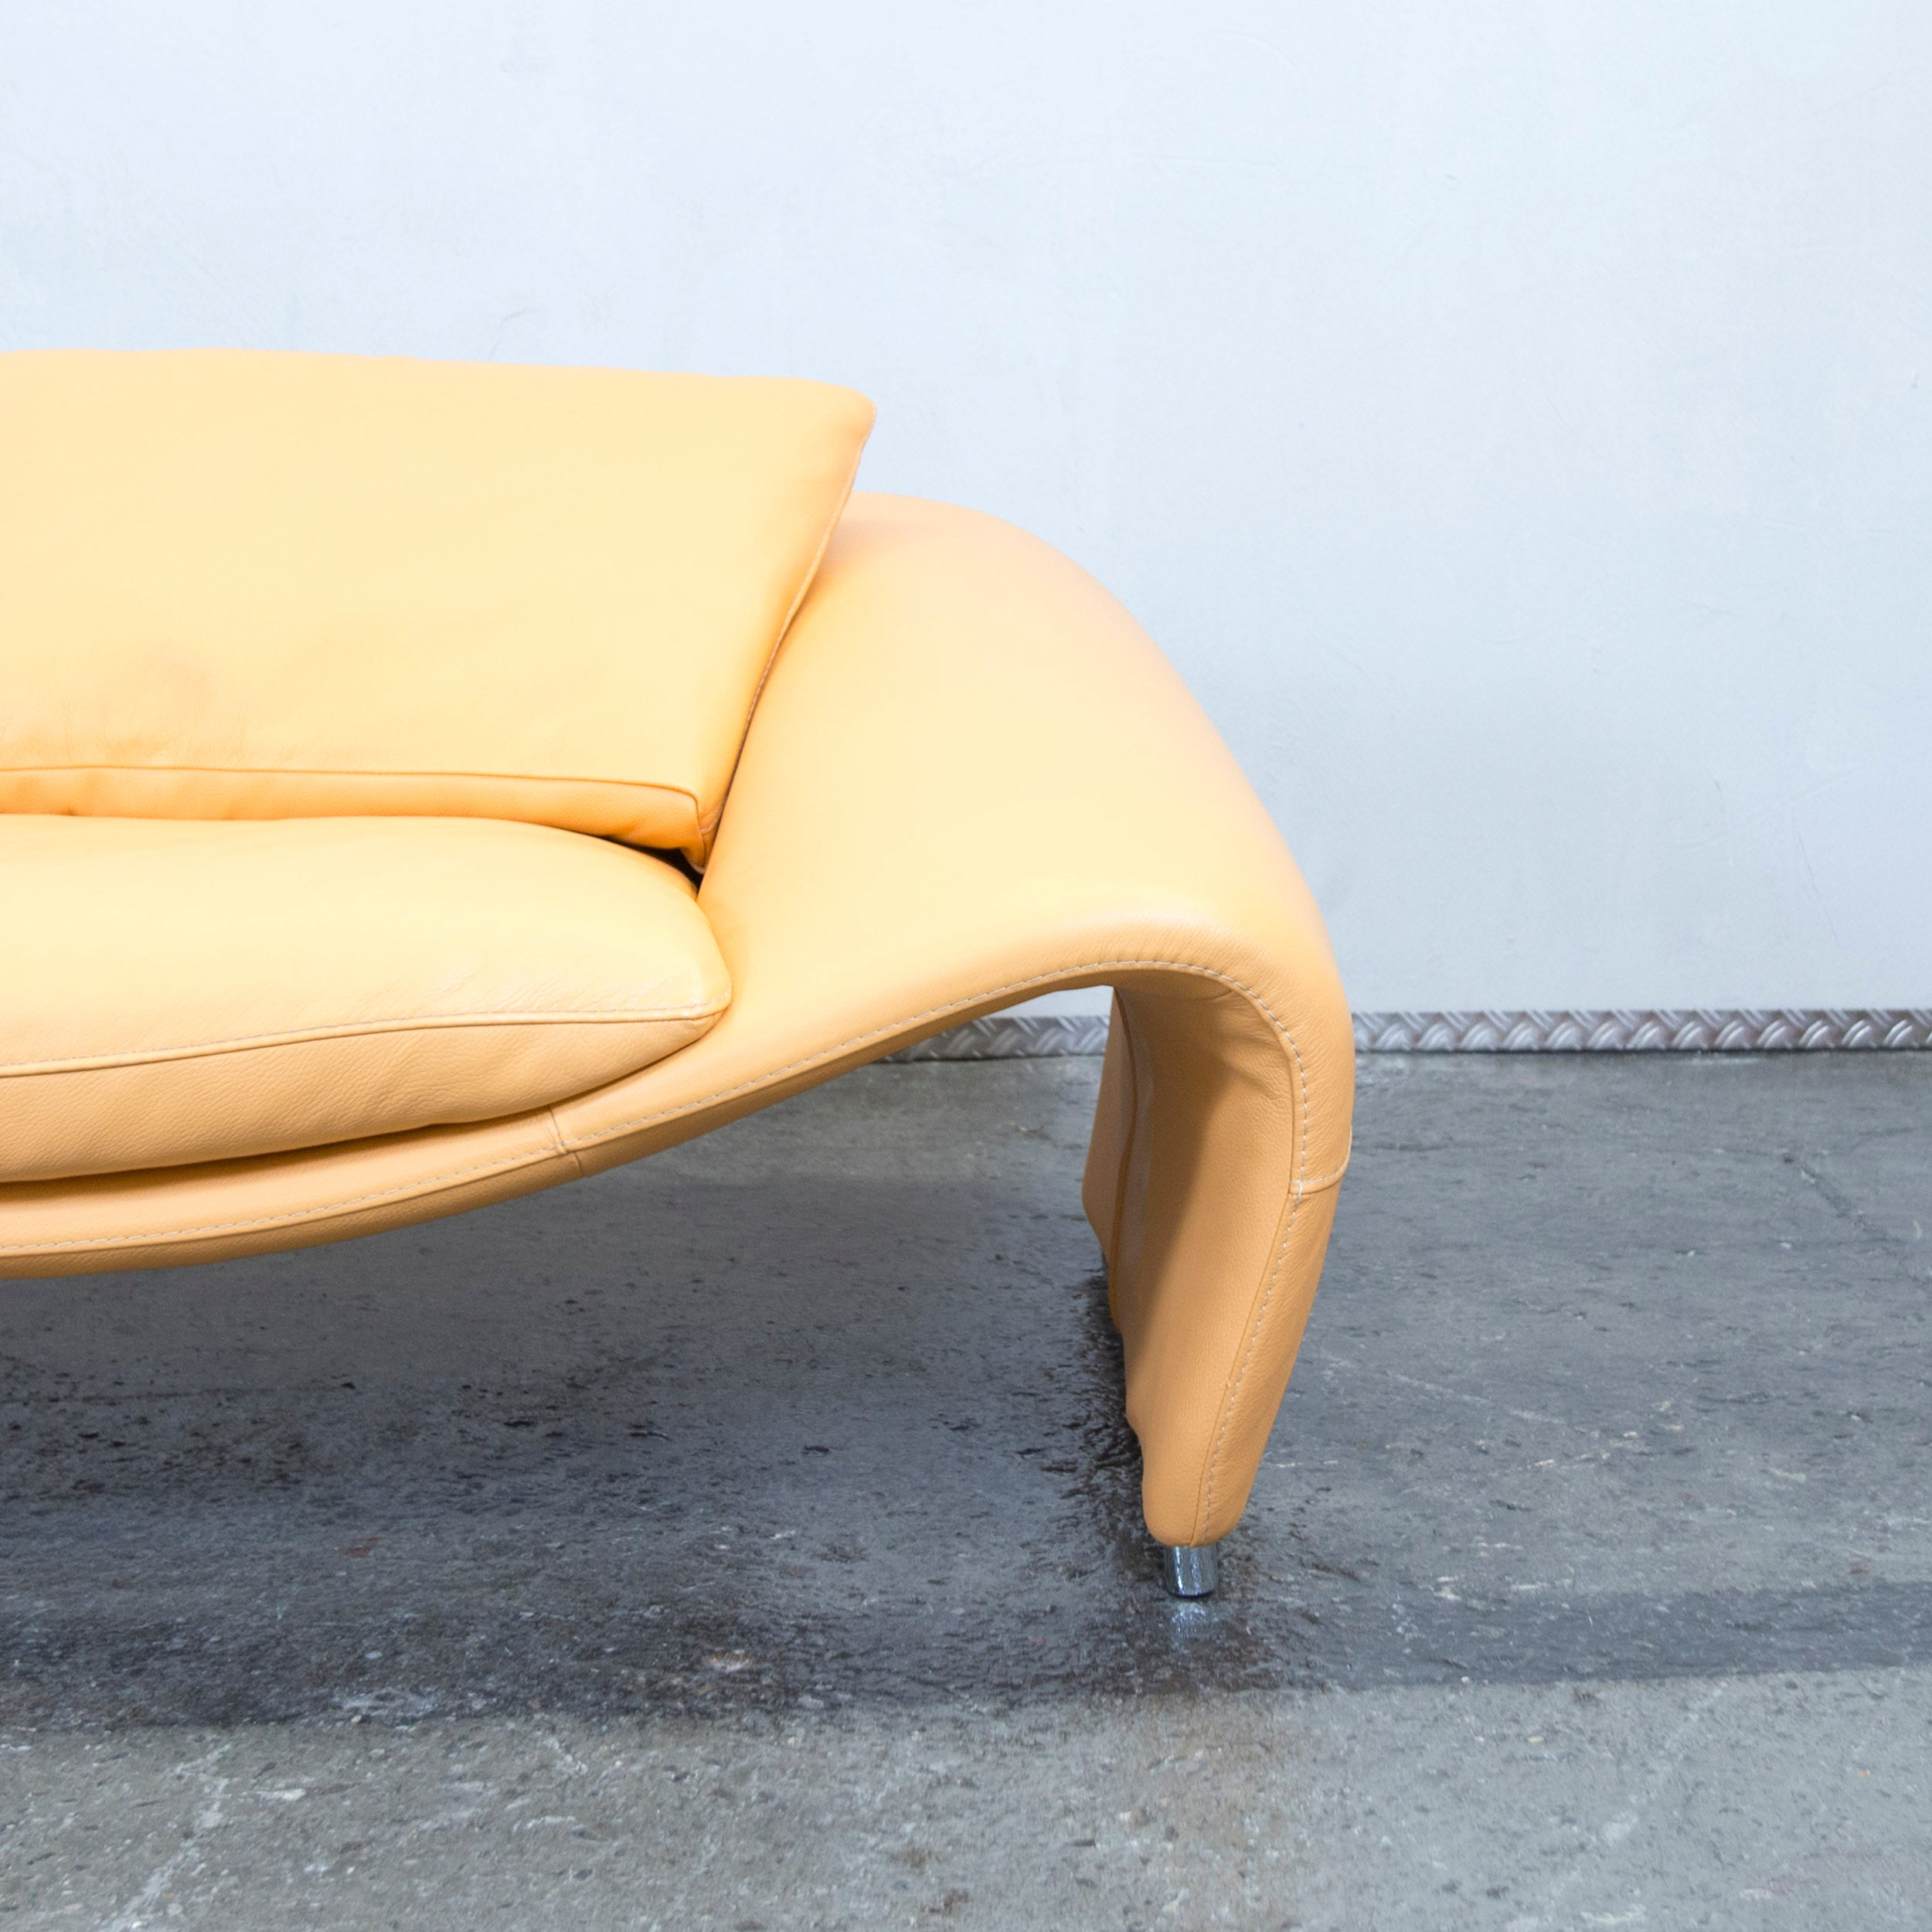 Chateau D Ax Voga Designer Leather Sofa Yellow Two Seat Couch Modern